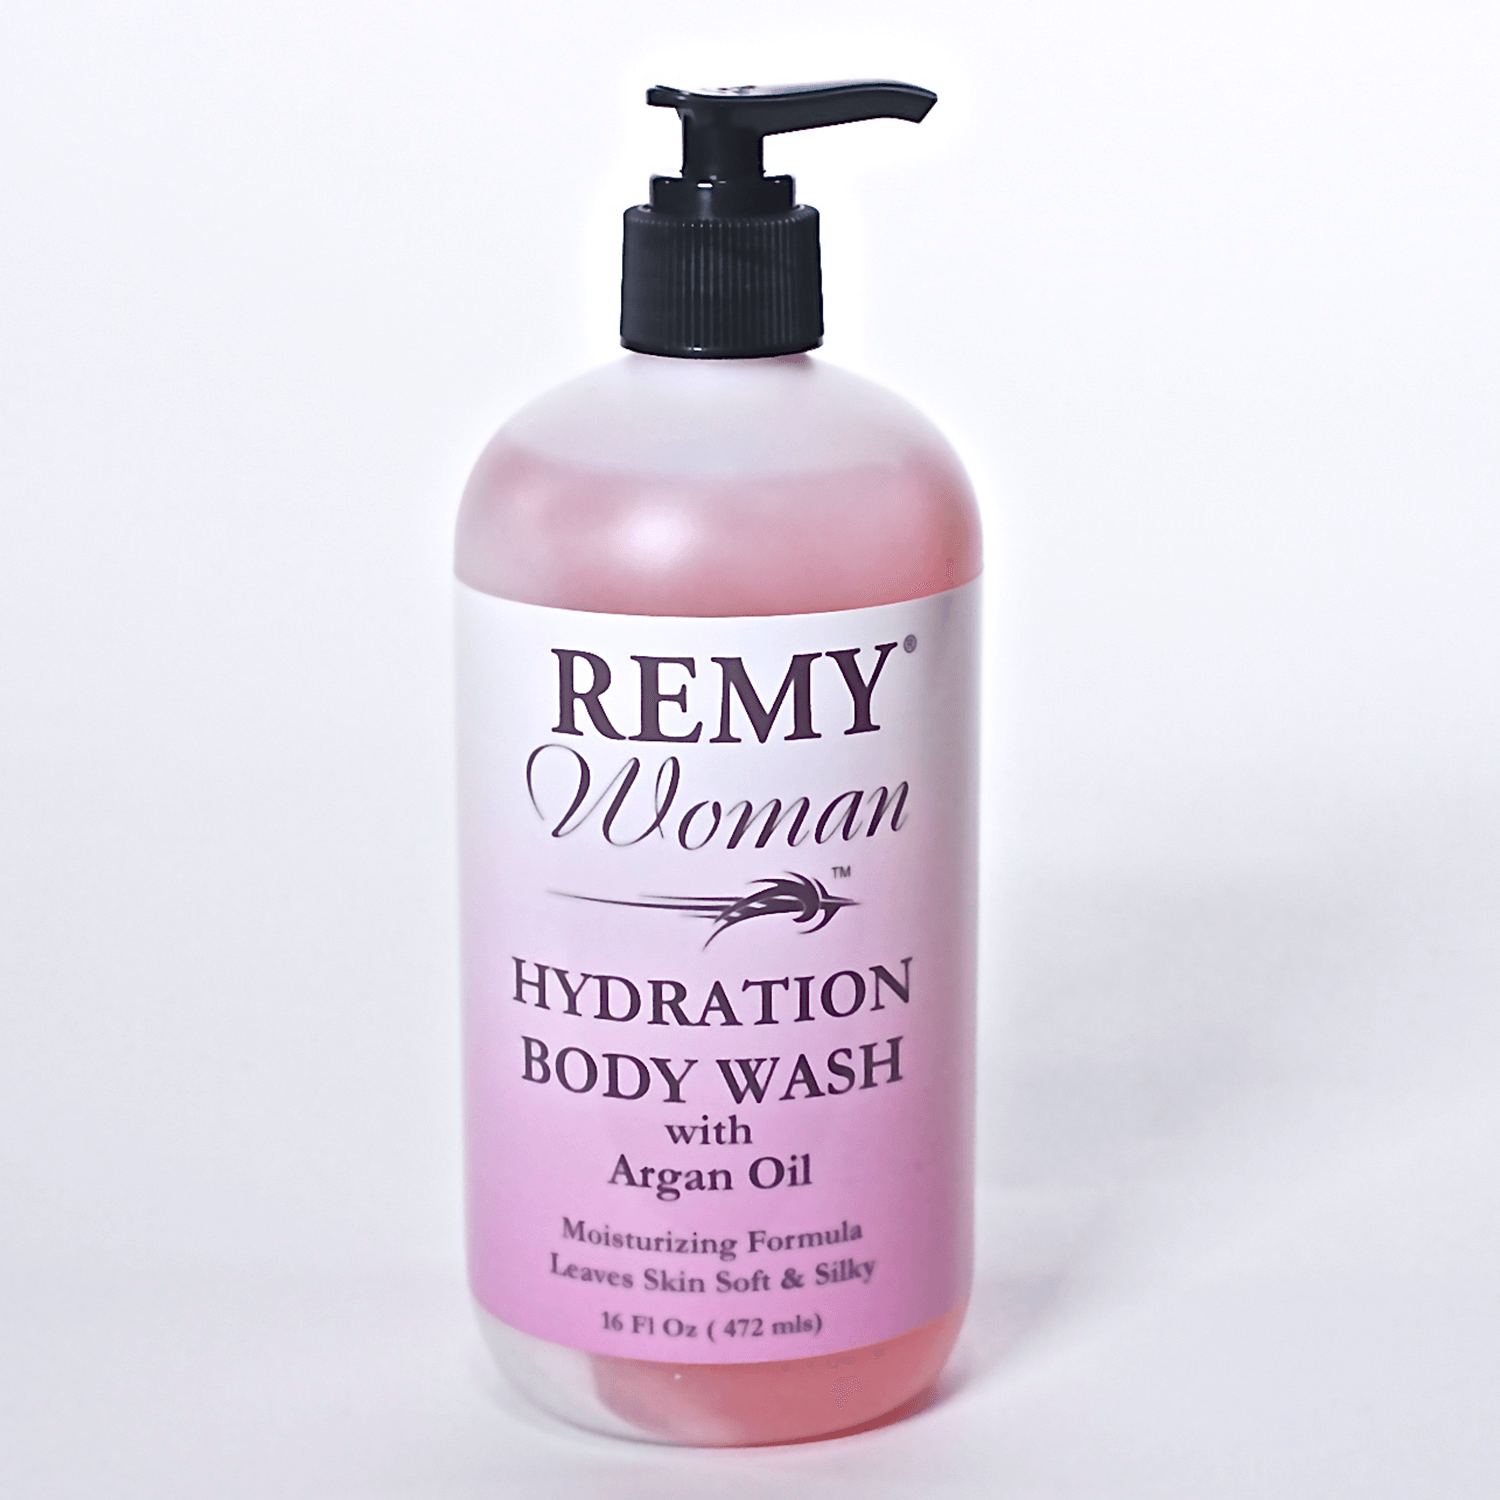 Hydration Body Wash